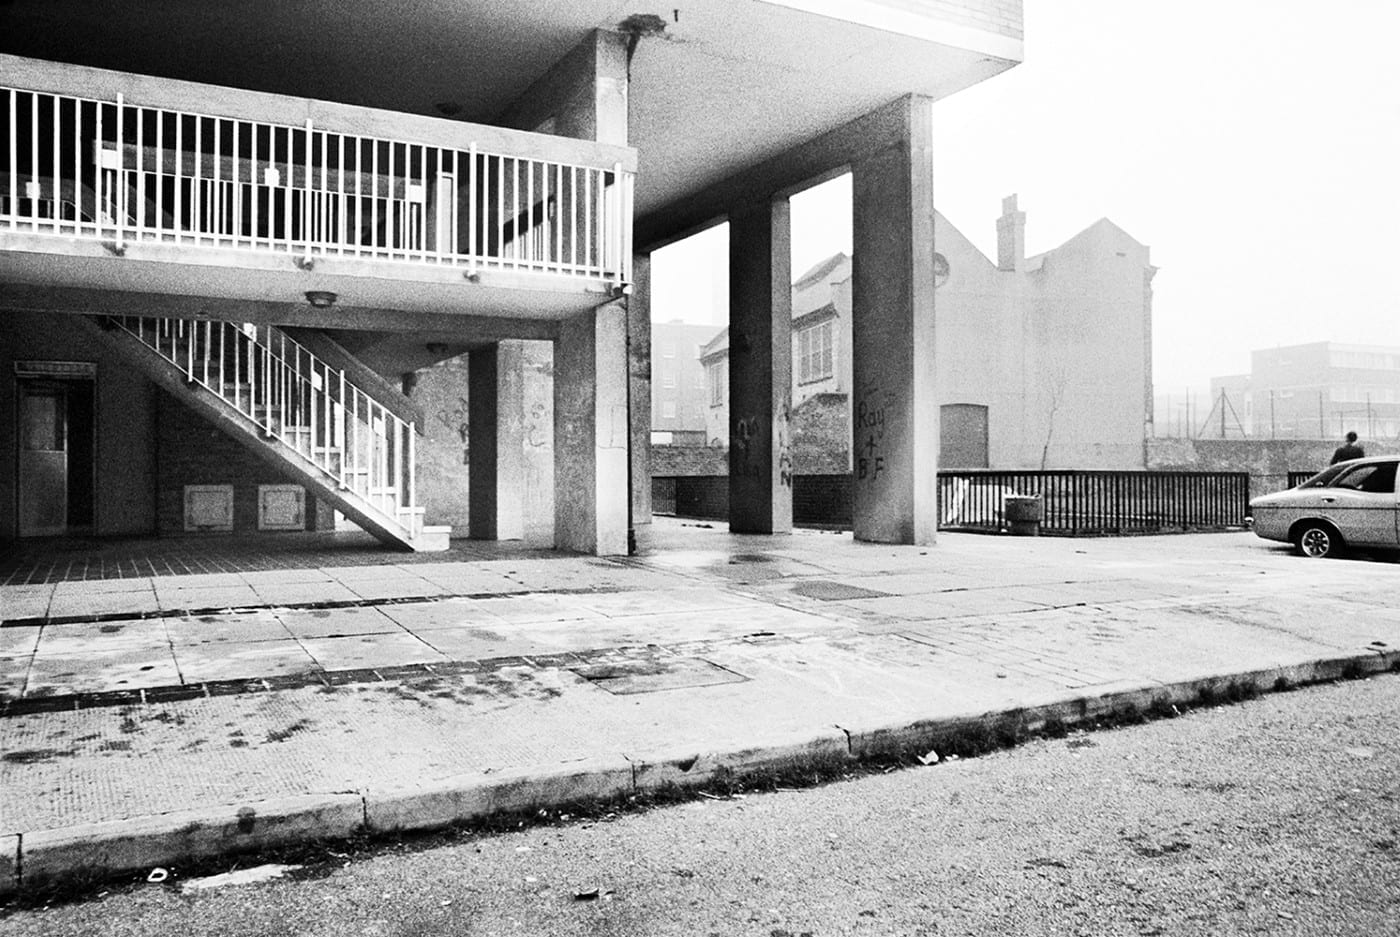 Dixon House, Squat (16th Floor), Latimer Road, 1980 C-Print Photograph (Custom)